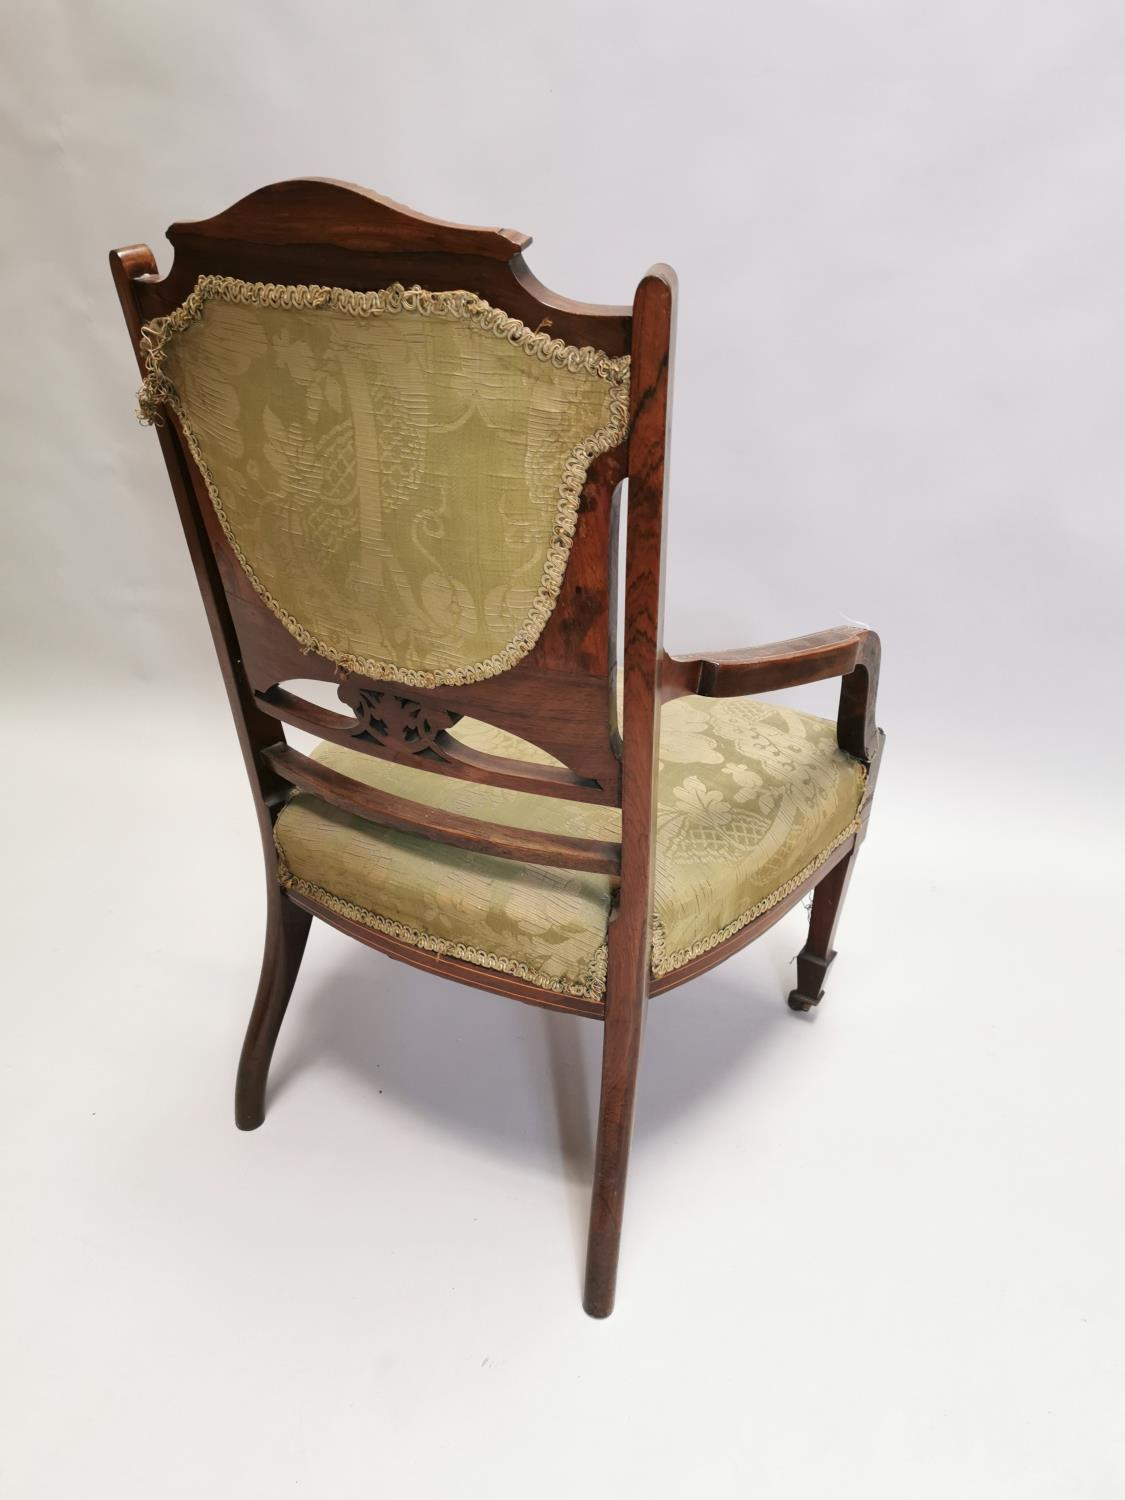 Edwardian inlaid upholstered Ladies armchair - Image 6 of 7